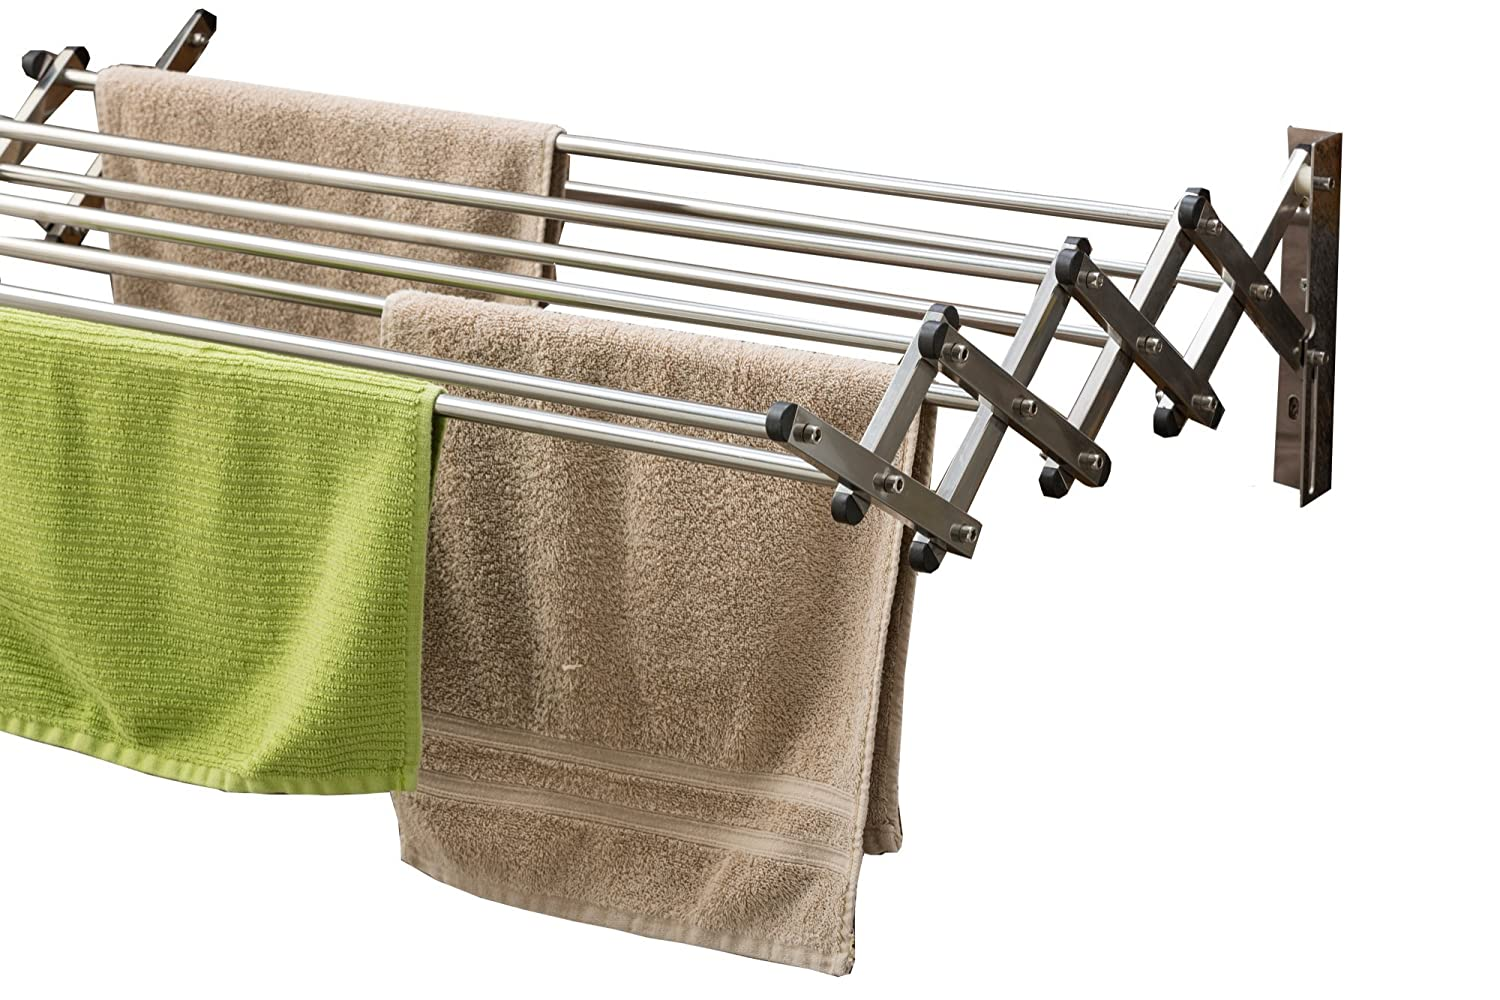 Aero W Stainless Steel Folding Clothes Rack (45lb Capacity, 11 Linear Ft) Aero-W